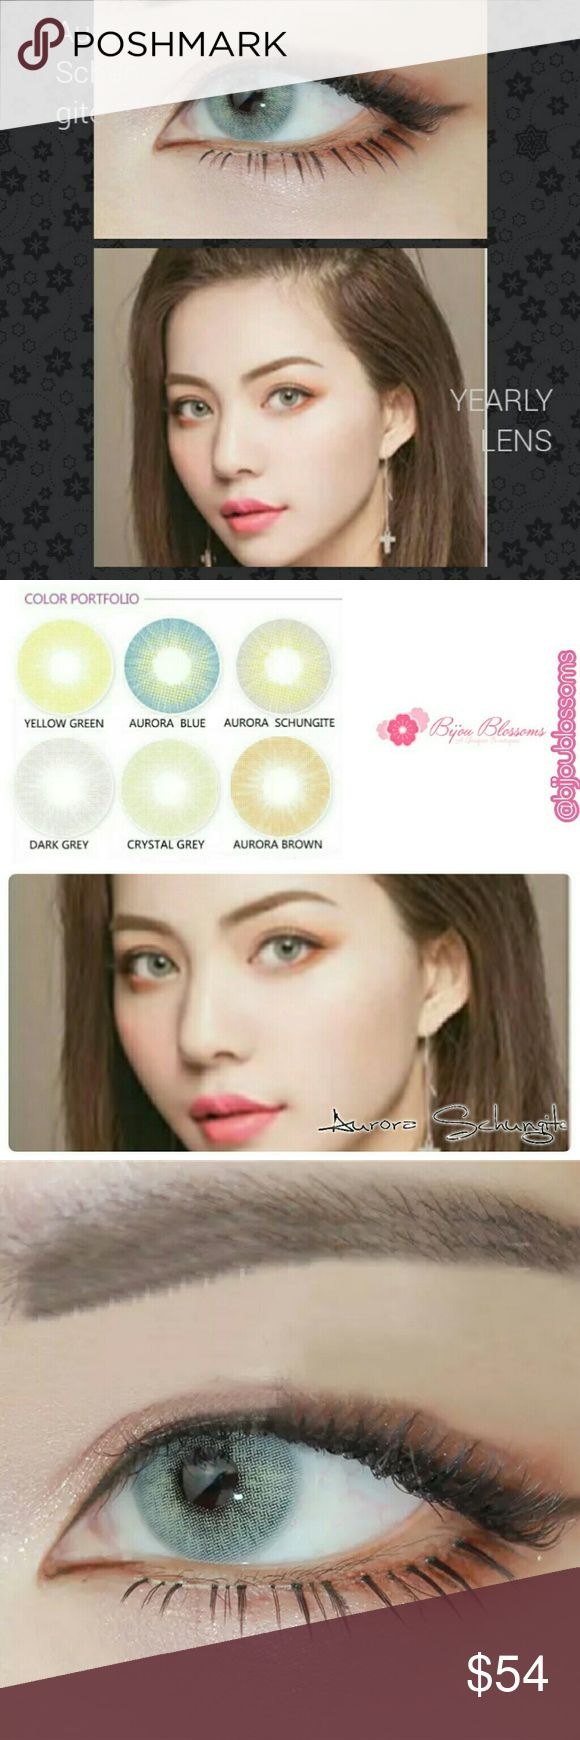 Aurora Schungite Hidrocor Yearly Contact Lens Beautiful Aurora Series Hidrocor three tone color contact lens. This listing is for one pair of plano -0.00 (no prescription) yearly disposable color contacts lens in the color Aurora Schungite.?   Details are as follows:  Expiration date: 01.2022 Base curve:8.5mm Diameter:14.2mm Center thickness: 0.08mm? Water content: 40% Main material: HEMA Lenses hardness: Soft Life span: One year  Please Note: 1.Brand new, high quality with fast shipping…